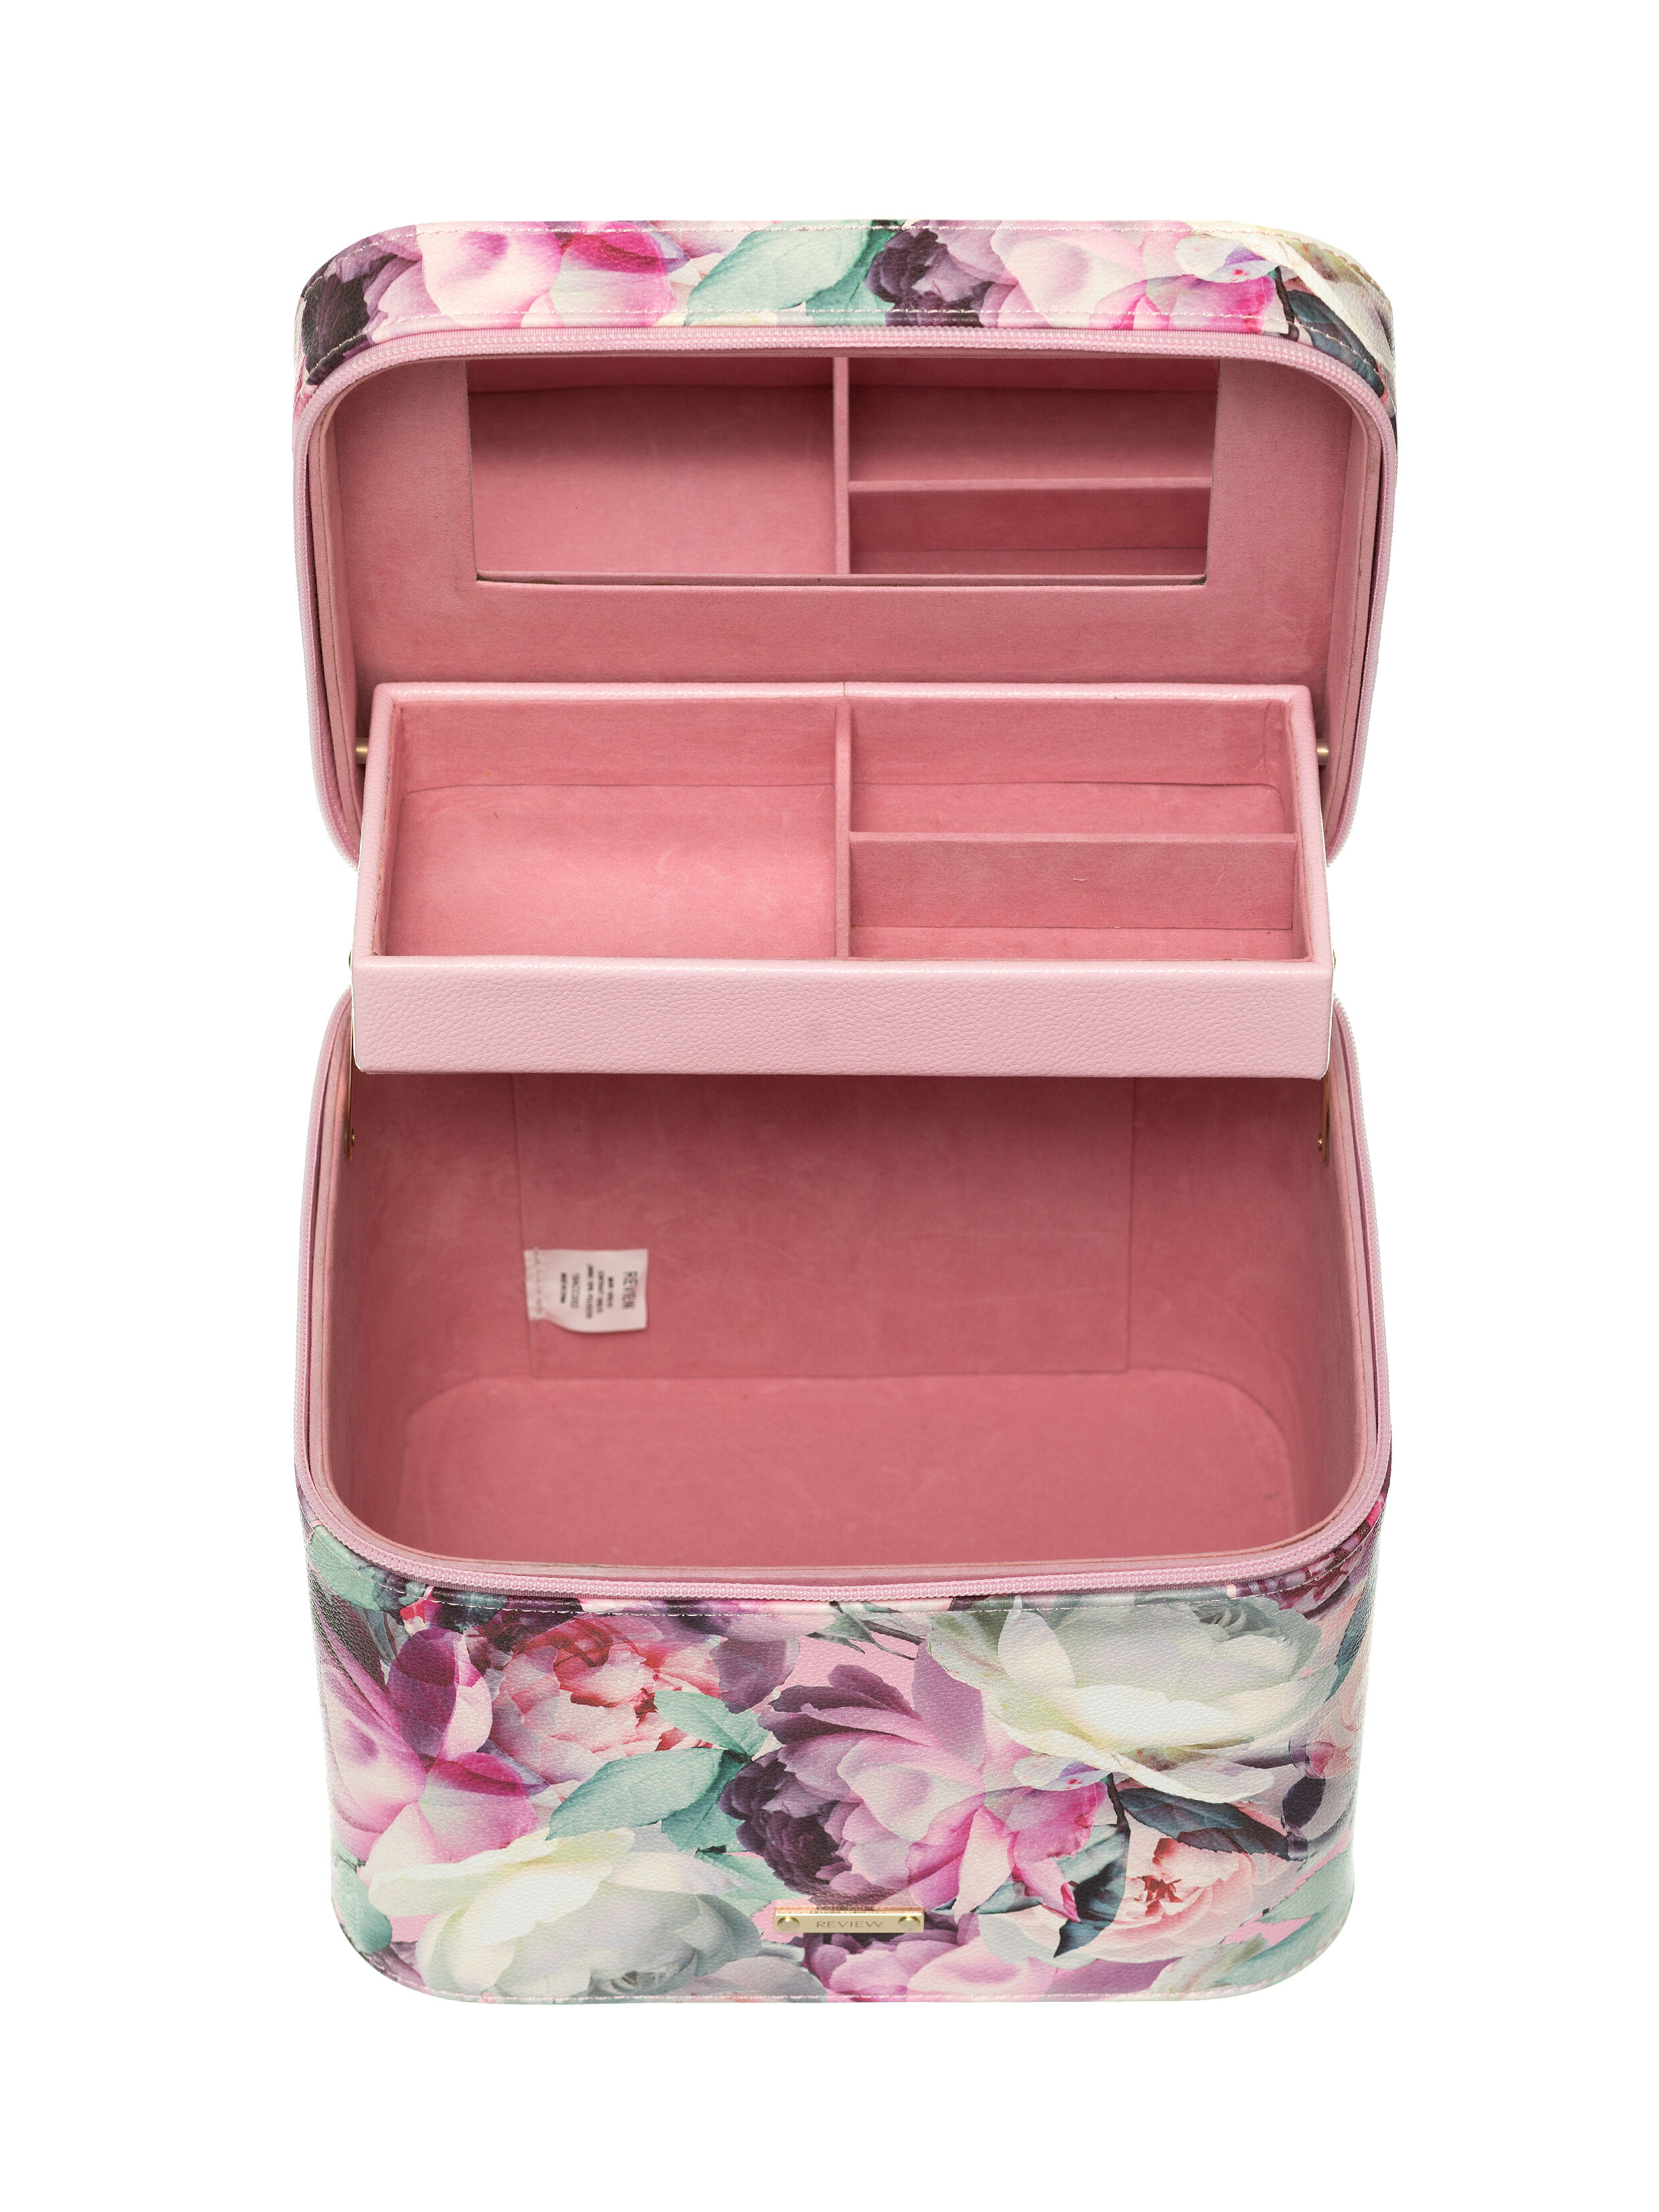 Tea Party Vanity Case